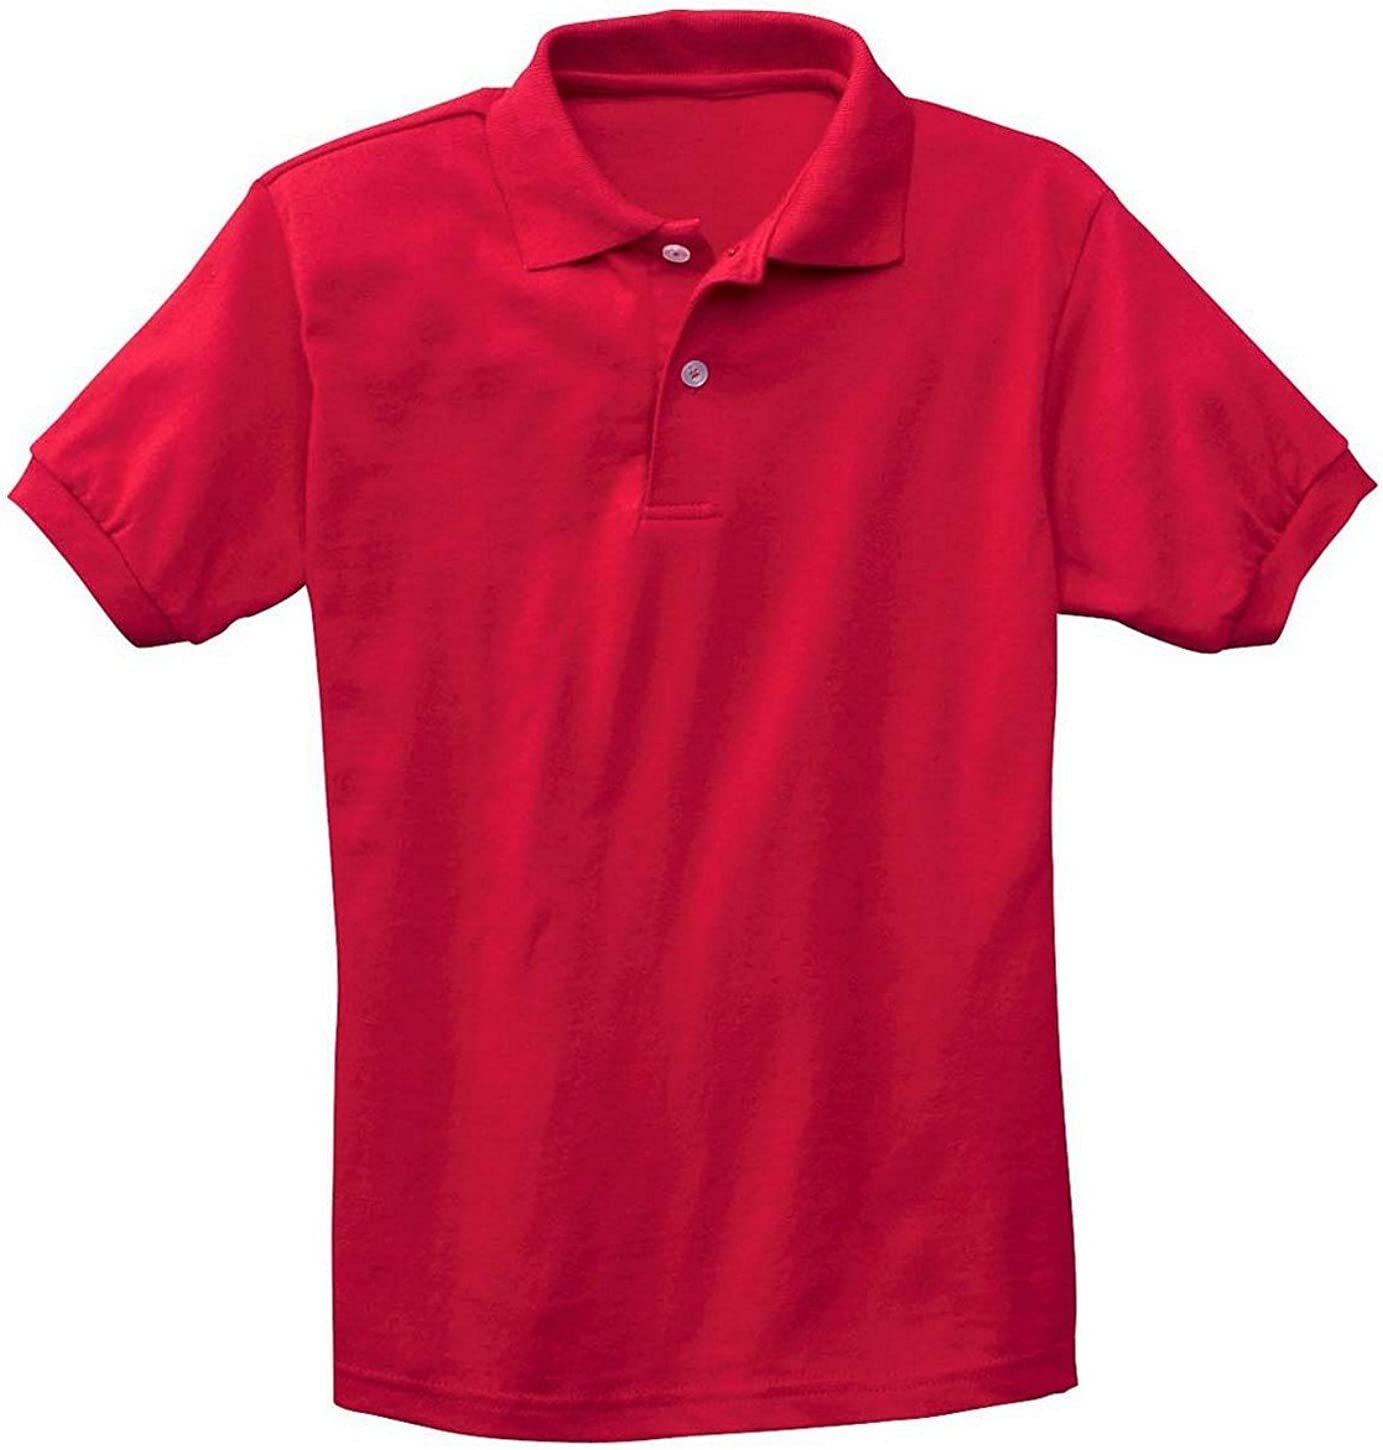 USA Hanes Stedman 054Y Youth 50/50 Jersey Knit Polo